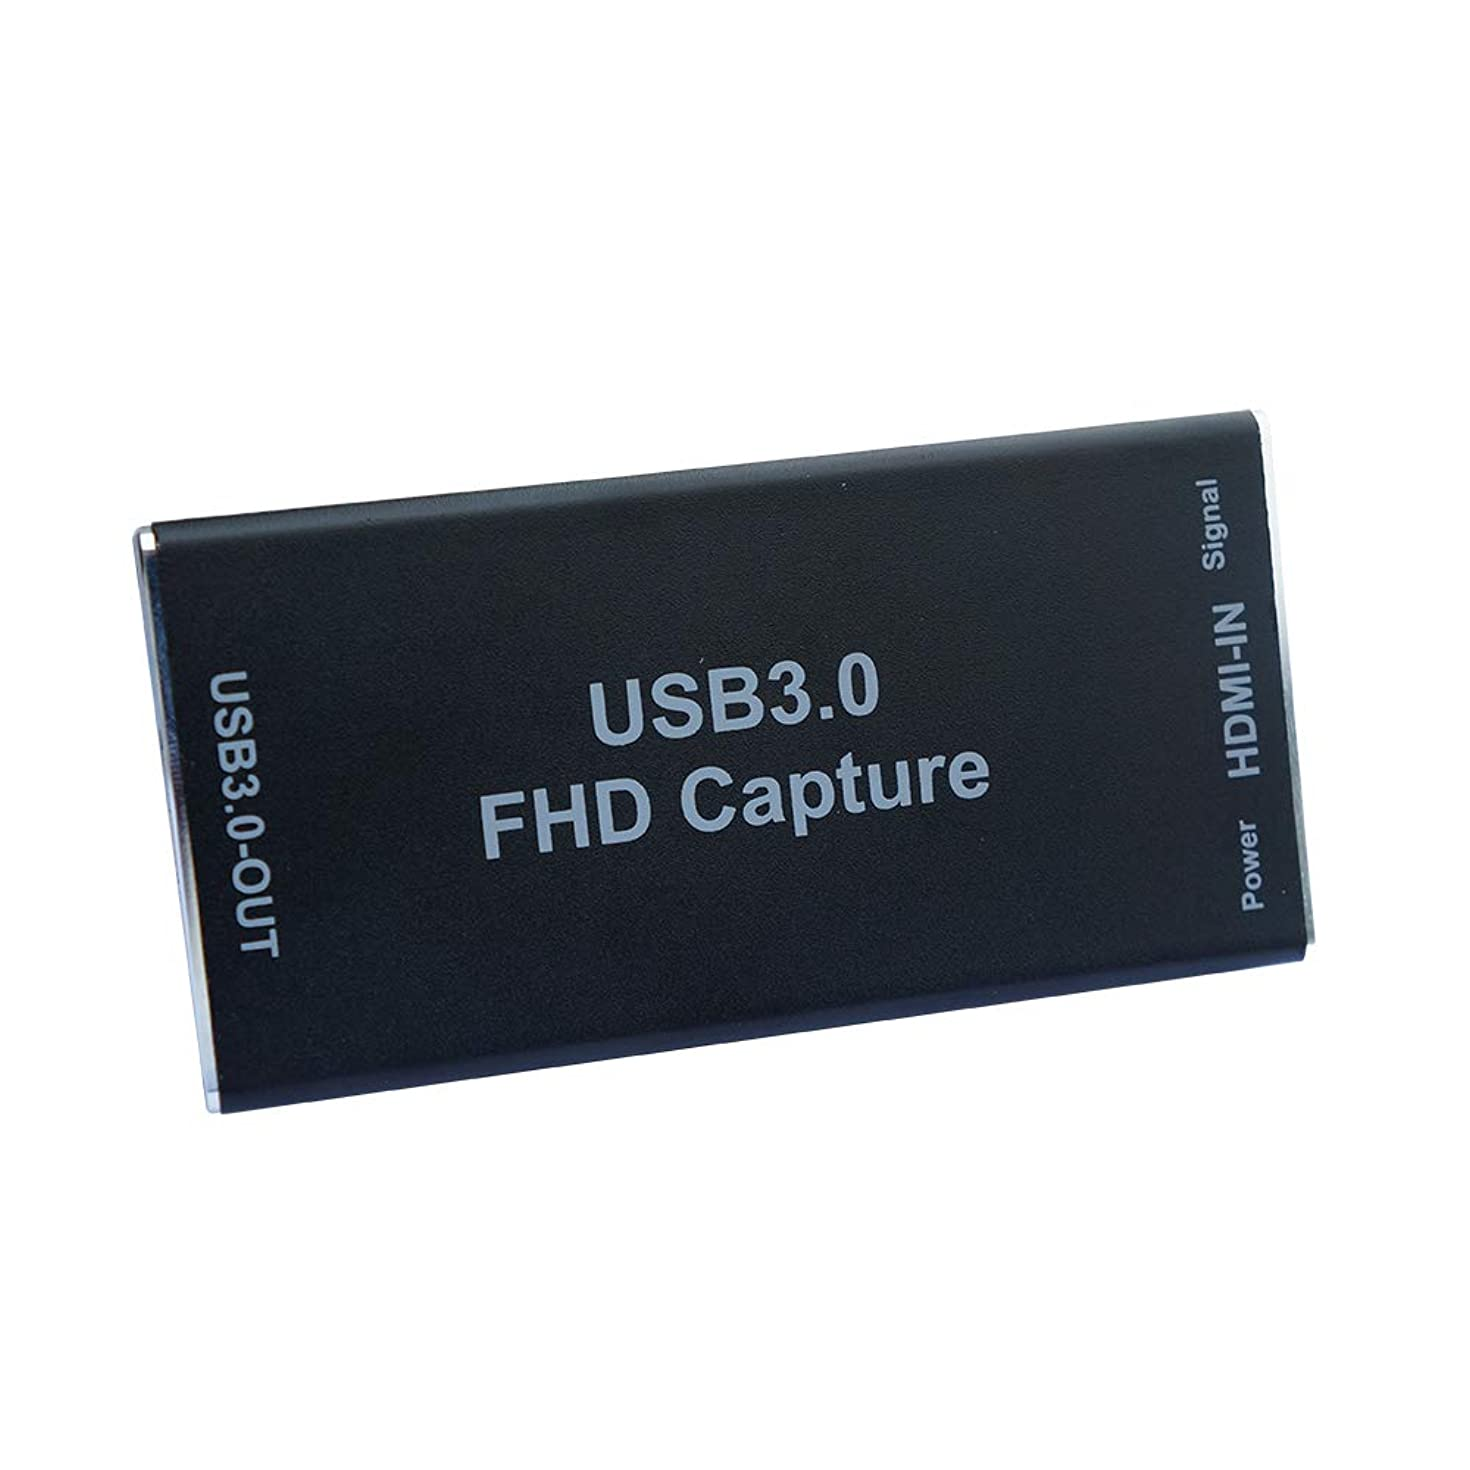 Brandoo HDMI to USB 3.0 Video Capture card Support OBS Studio Streaming HDMI Video or Gaming Videos to Computer for Live Show or Meeting On Line